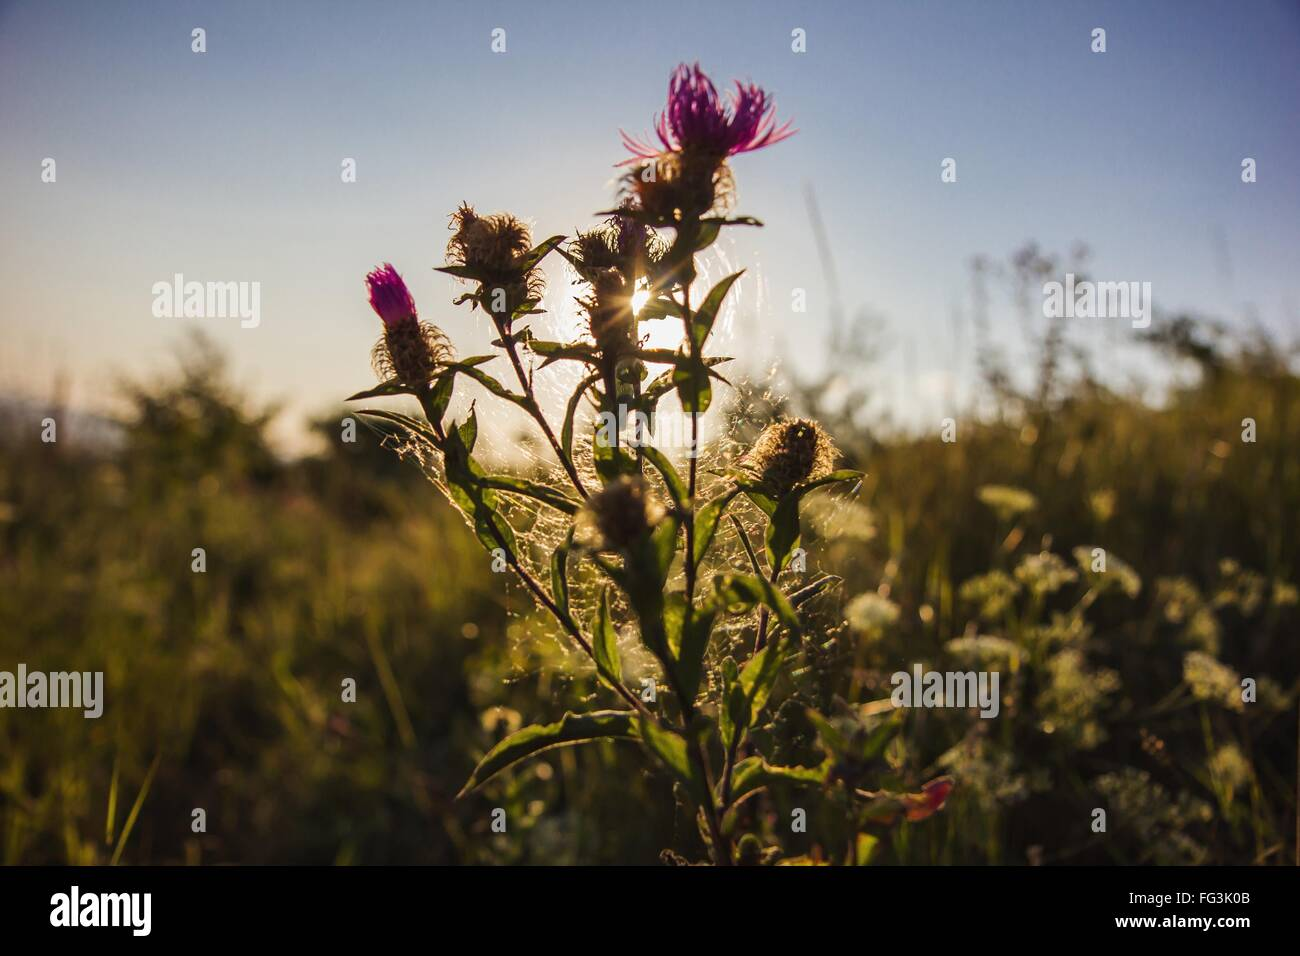 Close-Up Of Purple Flower With Spider Web In Field Against Sky - Stock Image